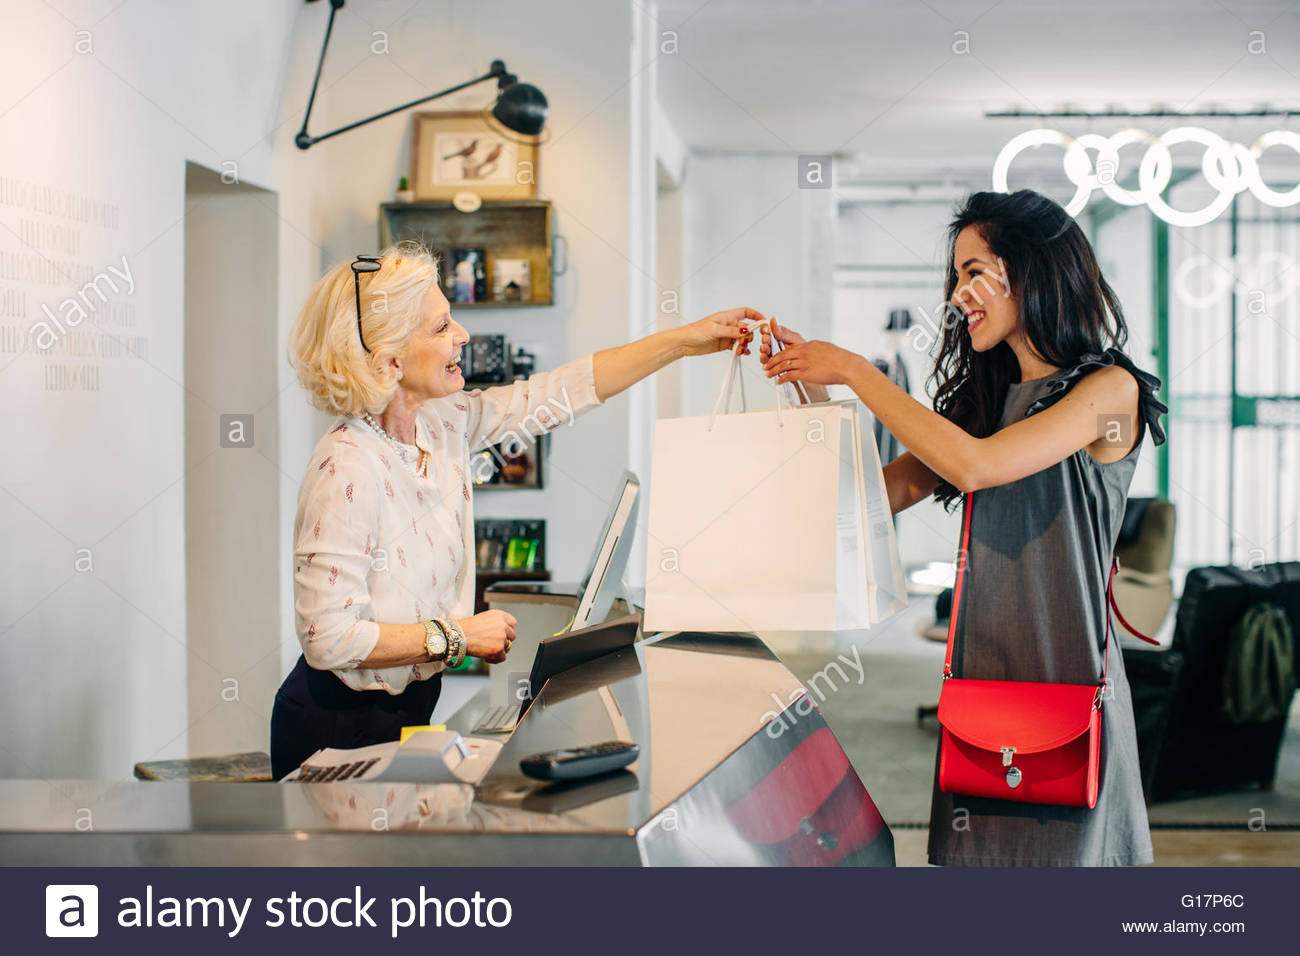 Sales assistant handing customer shopping bags Stock Photo ...